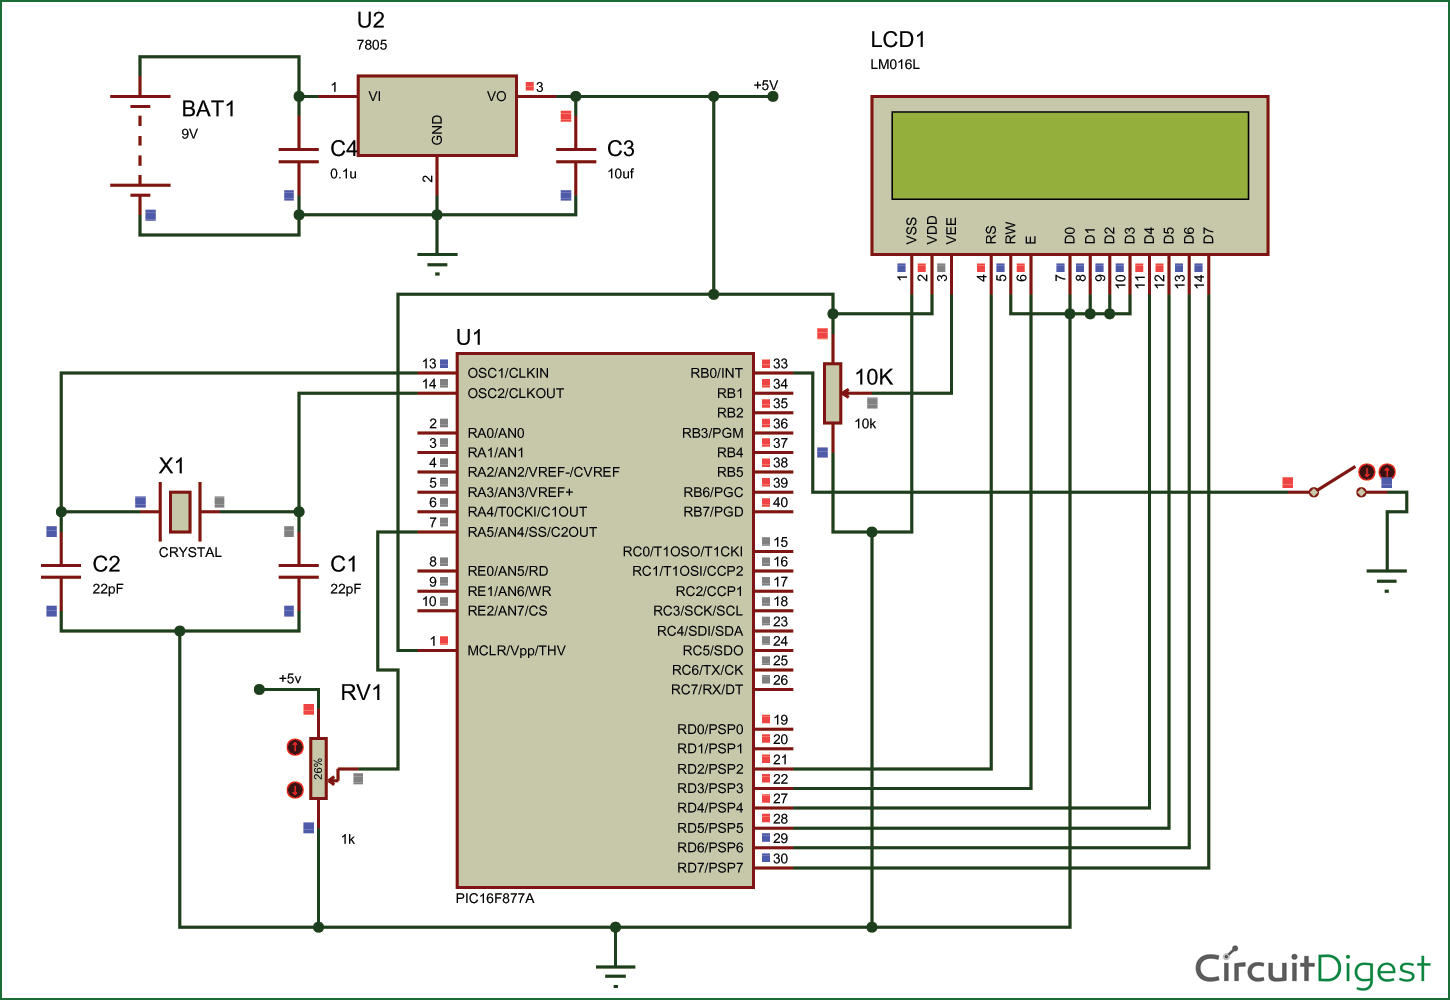 Tutorial to use pic16f877a microcontroller eeprom circuit diagram and explanation ccuart Gallery